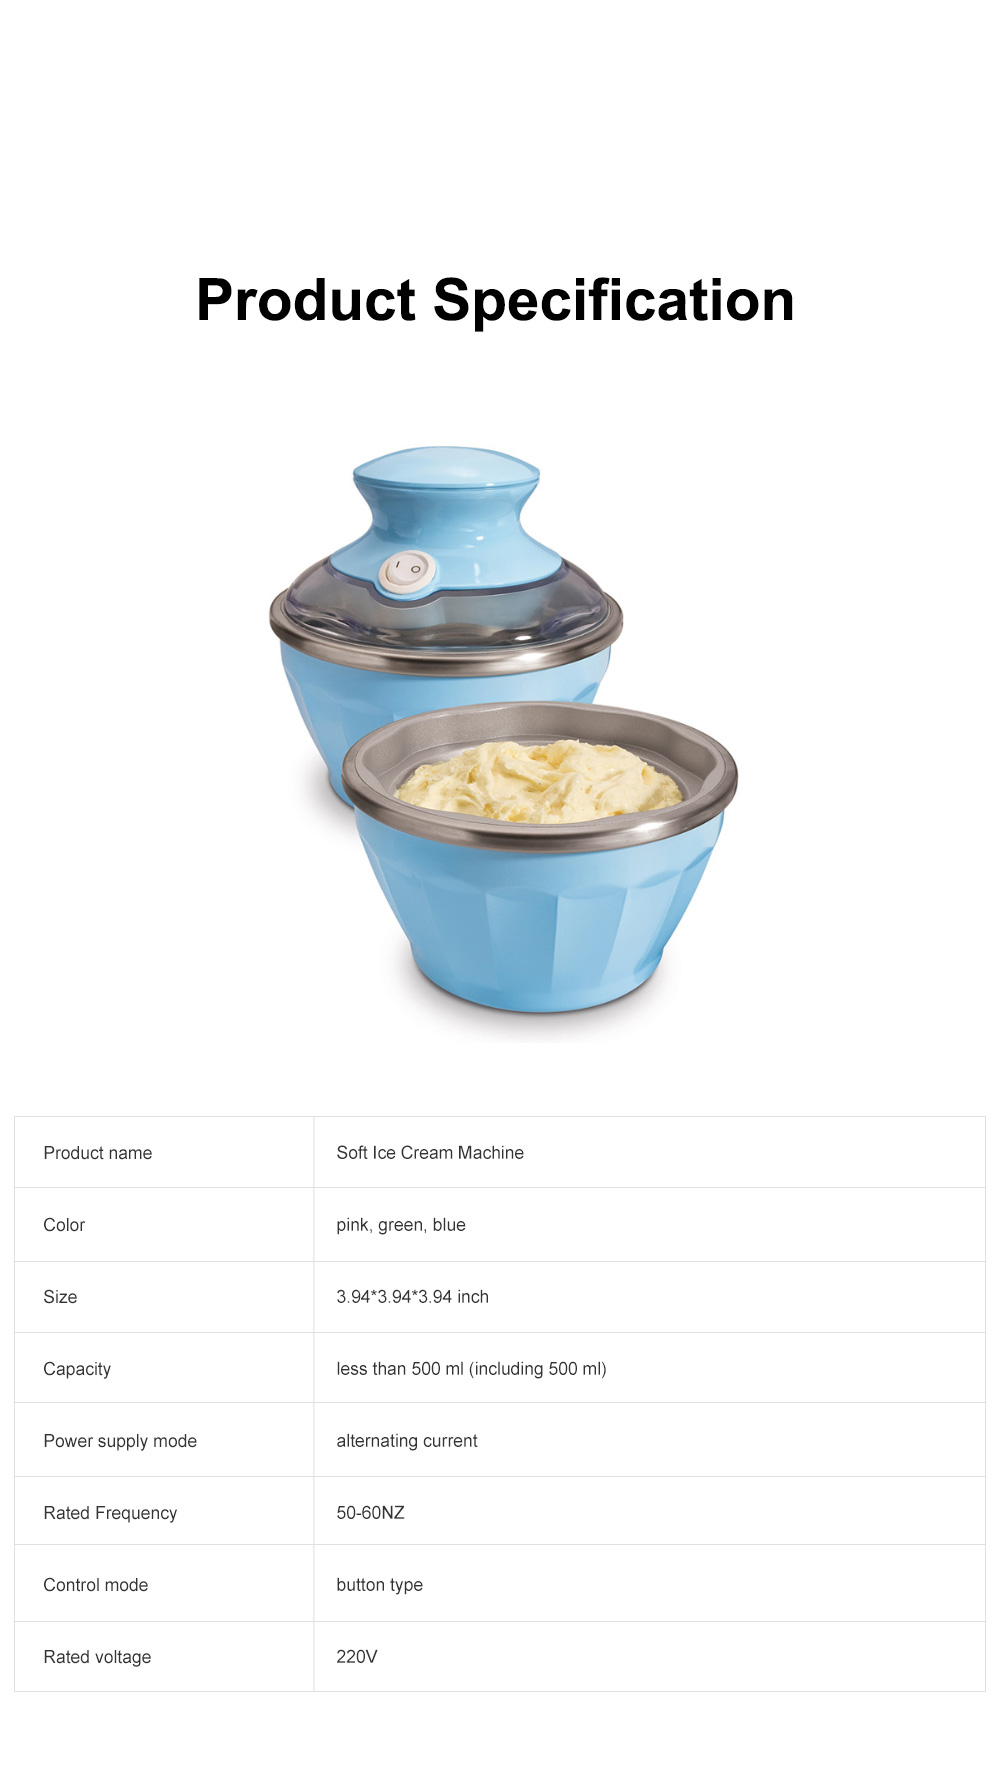 Double Bowl Soft Ice Cream Machine Home Fully Automated Ice Cream Maker Ice-cream Machine 9